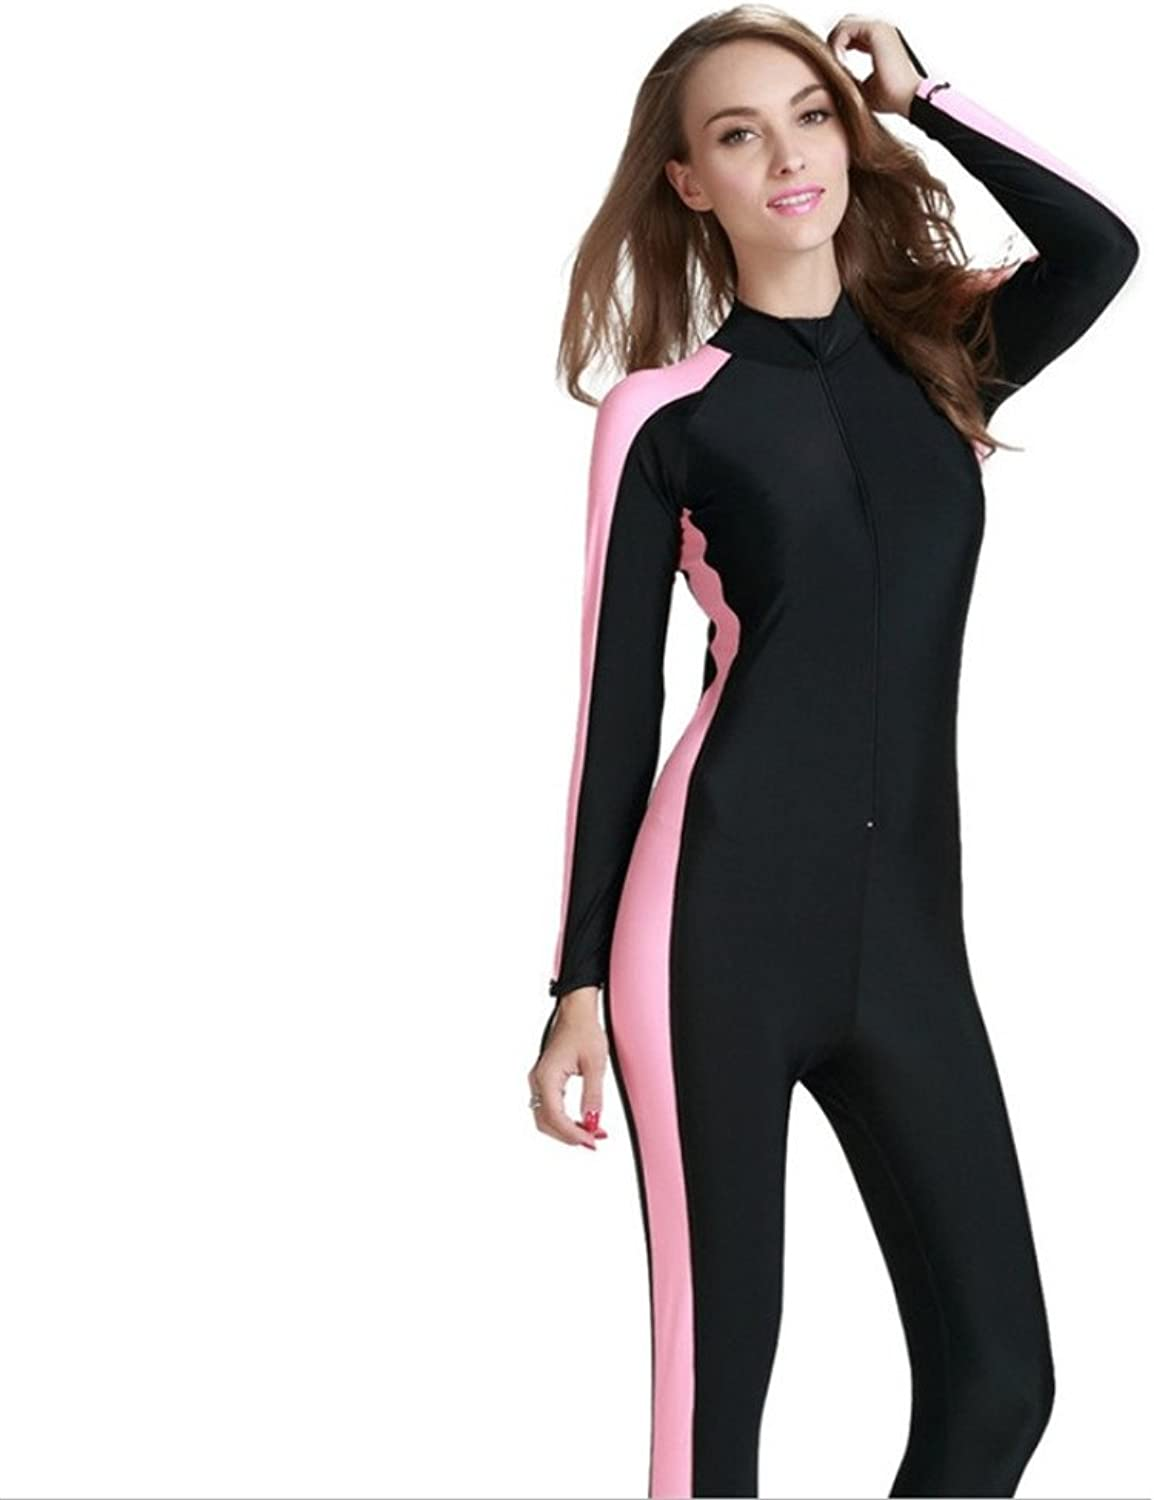 Women's Onepiece Swimwear Full Cover Wetsuits Modest Swimsuits for Women Surfing Suit Jellyfish Swimsuit